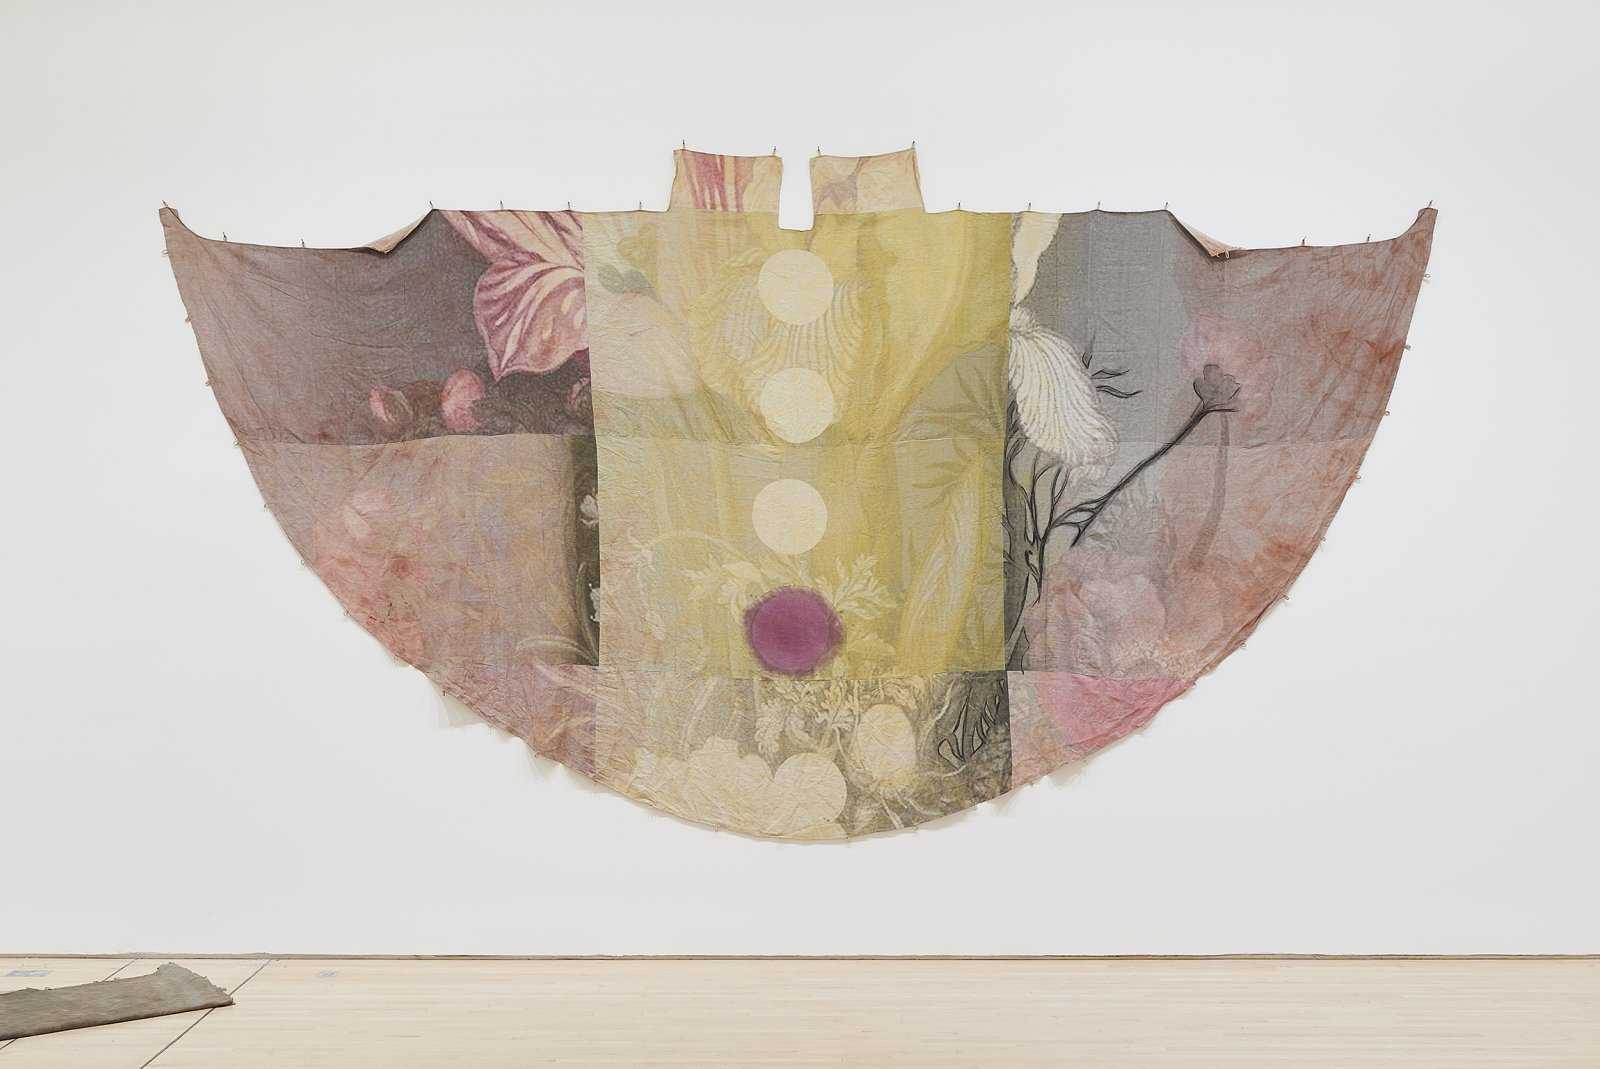 Duane Linklater, can the circle be unbroken 2, 2019, digital print on linen, iron red dye, cypress yellow ochre, blueberry extract, charcoal, 120 x 240 in. (305 x 610 cm). Installation view, SOFT POWER, SF MOMA, San Francisco, USA, 2019 by Duane Linklater